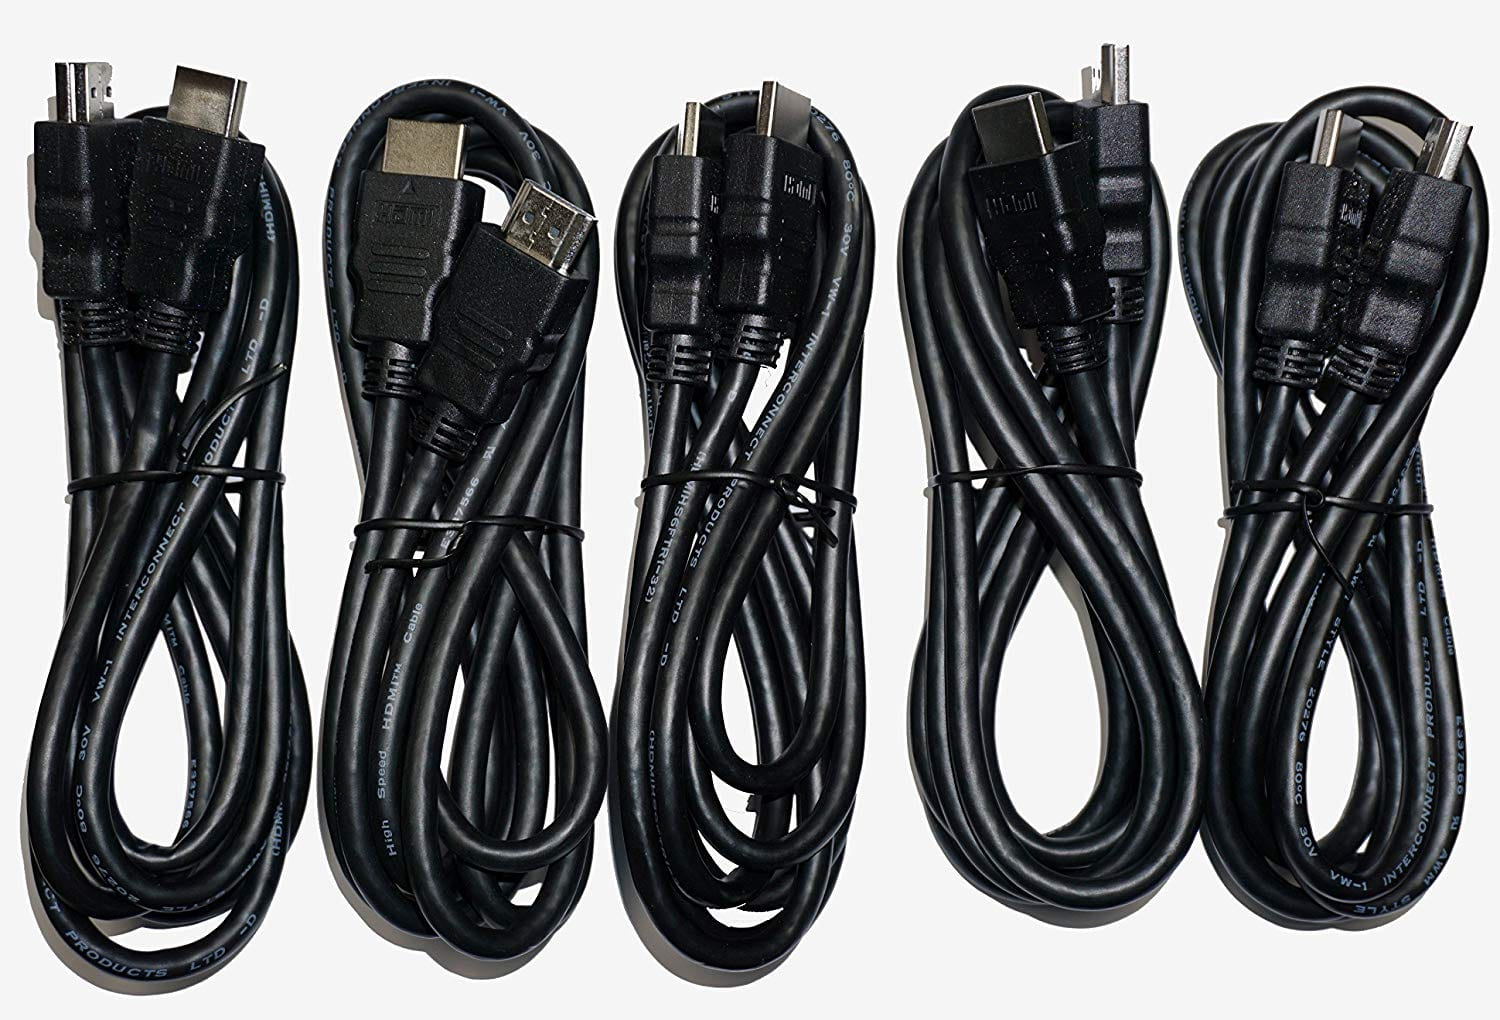 Amazon Fulfilled: 5 Pack - DirecTV Universal High Speed 6FT HDMI Cable & free shipping $7.07